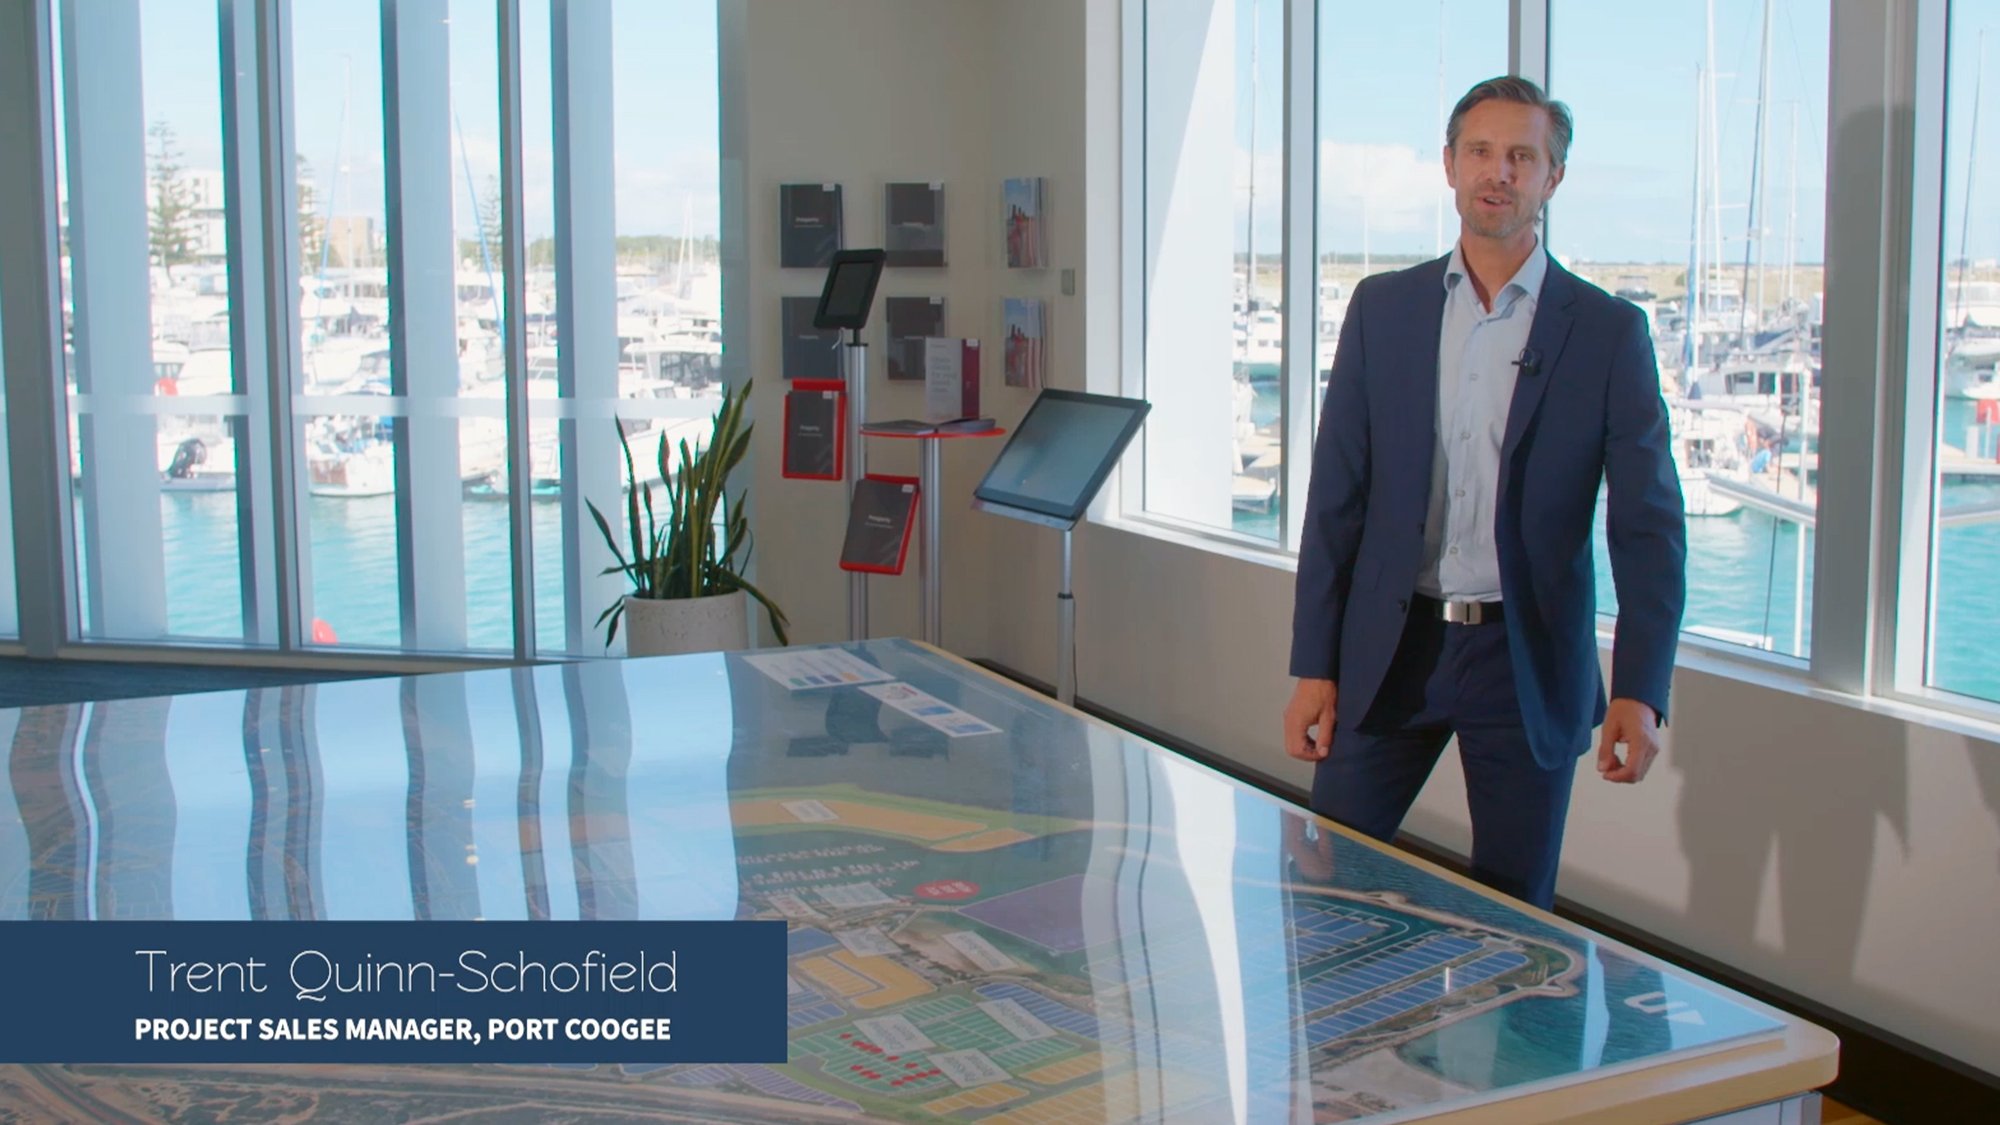 Trent Quinn-Schofield Project Sales Manager, Port Coogee